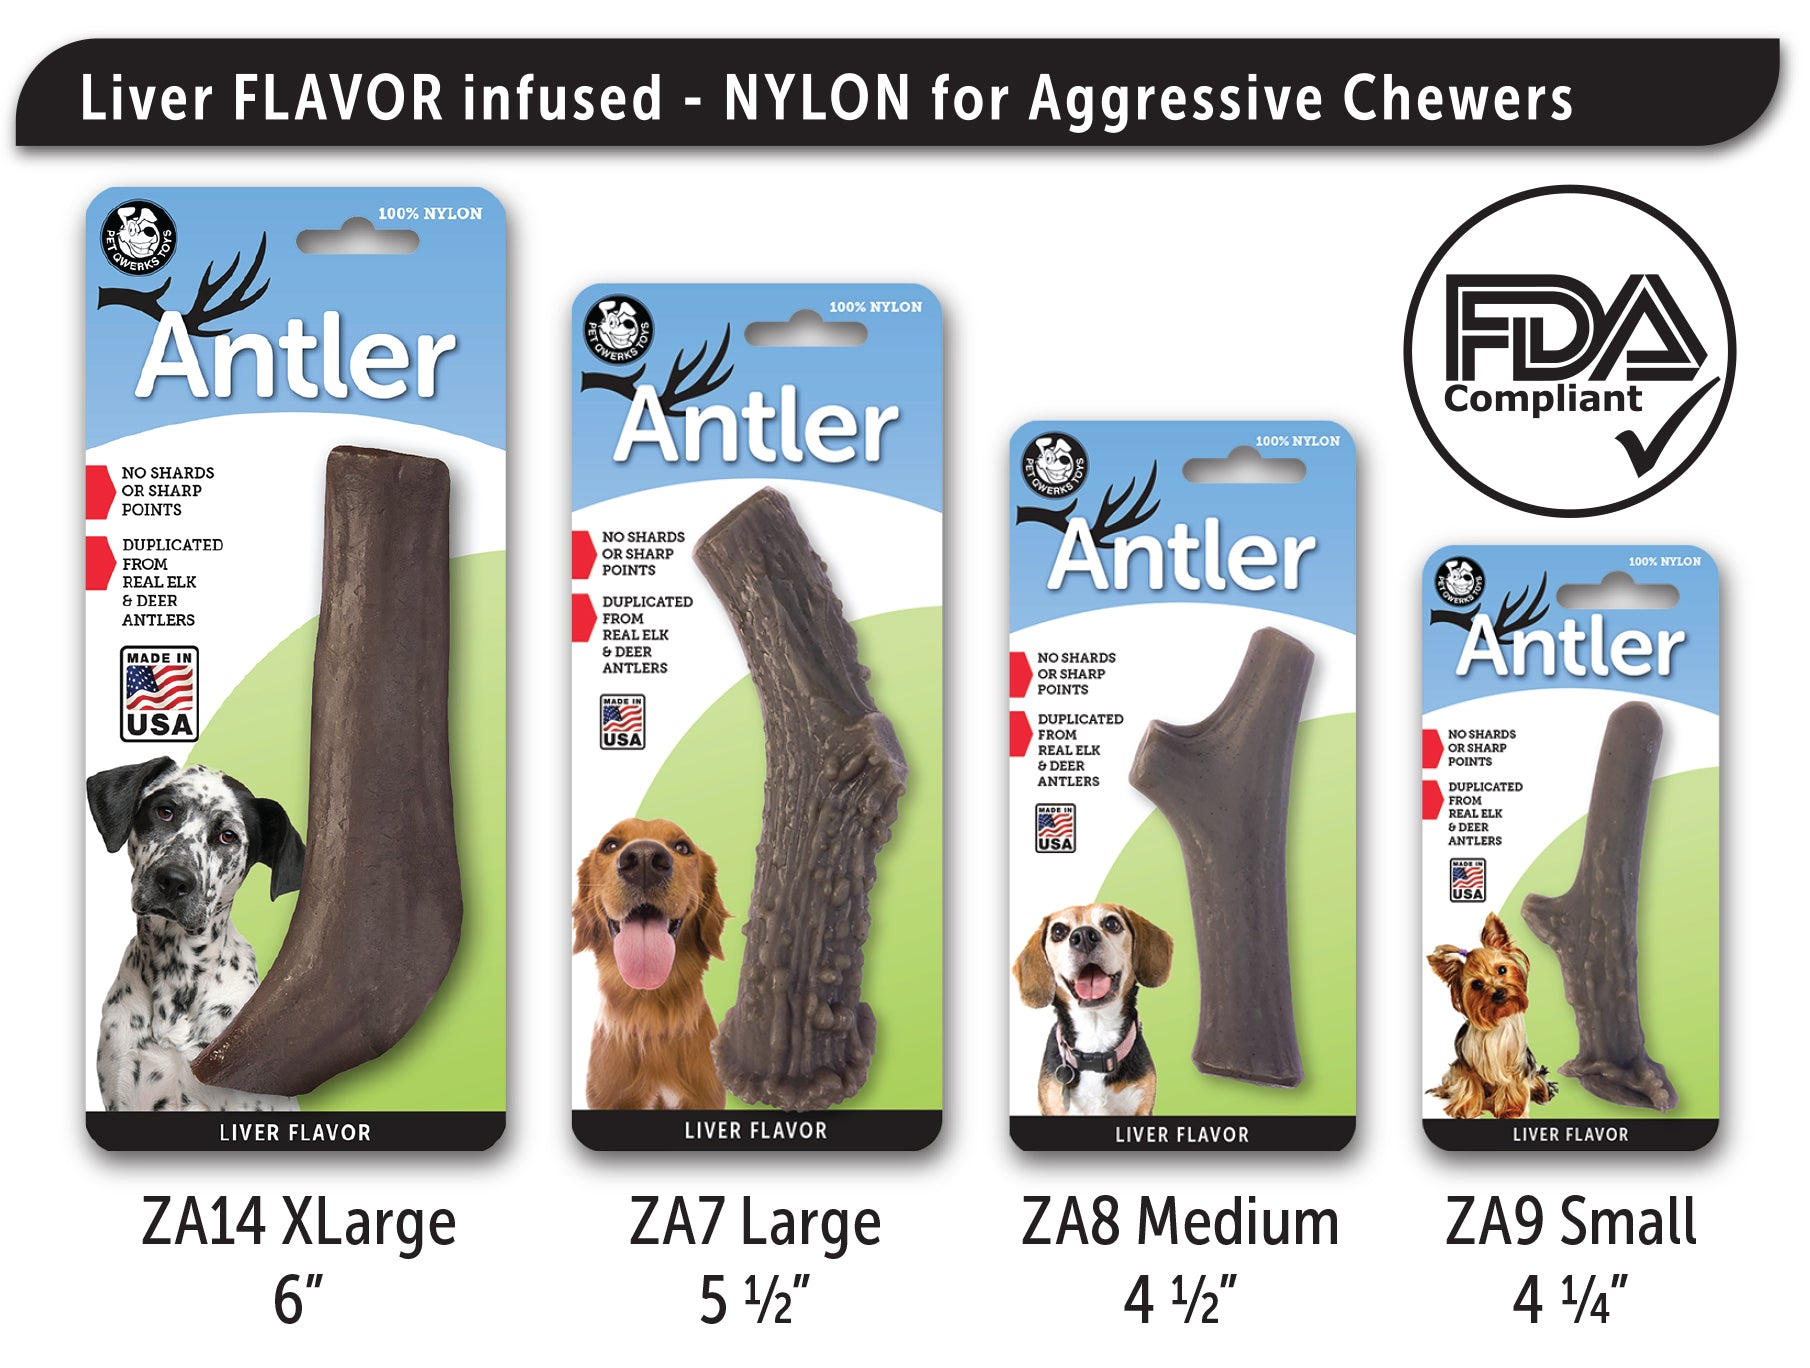 Nylon Antler Dog Chew Toy LIVER Flavor Infused